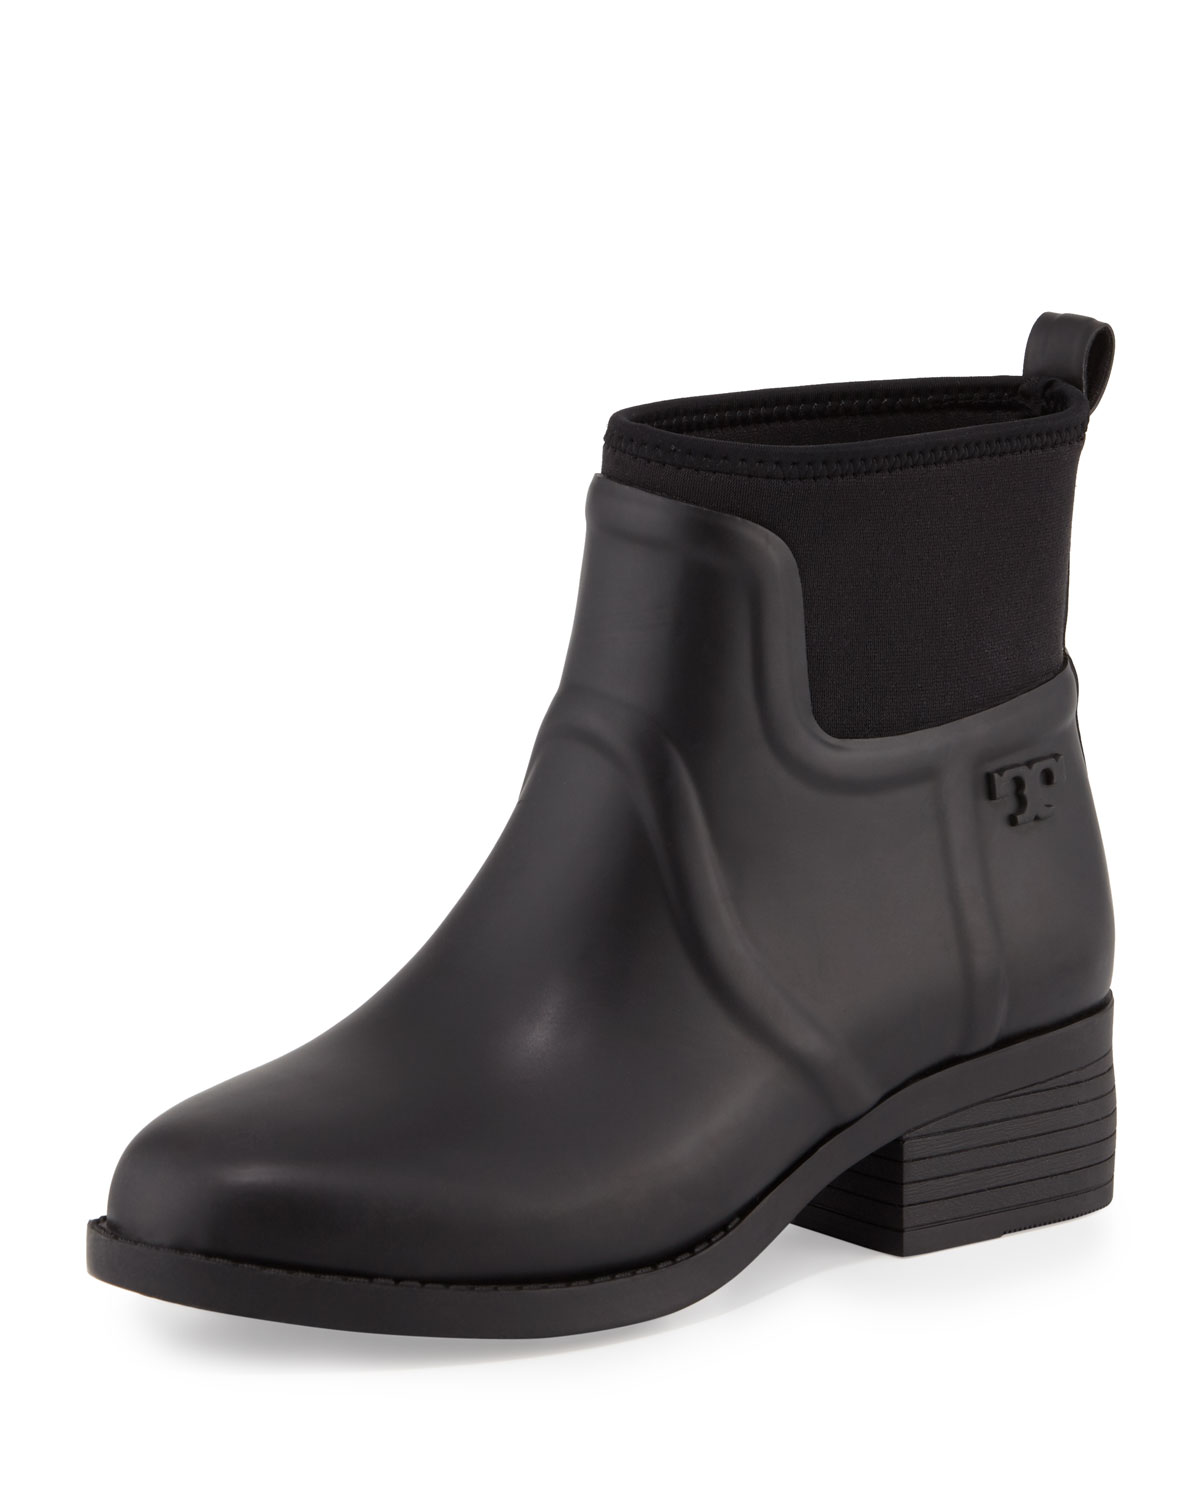 342b97160d2 Tory Burch April Short Rain Boot